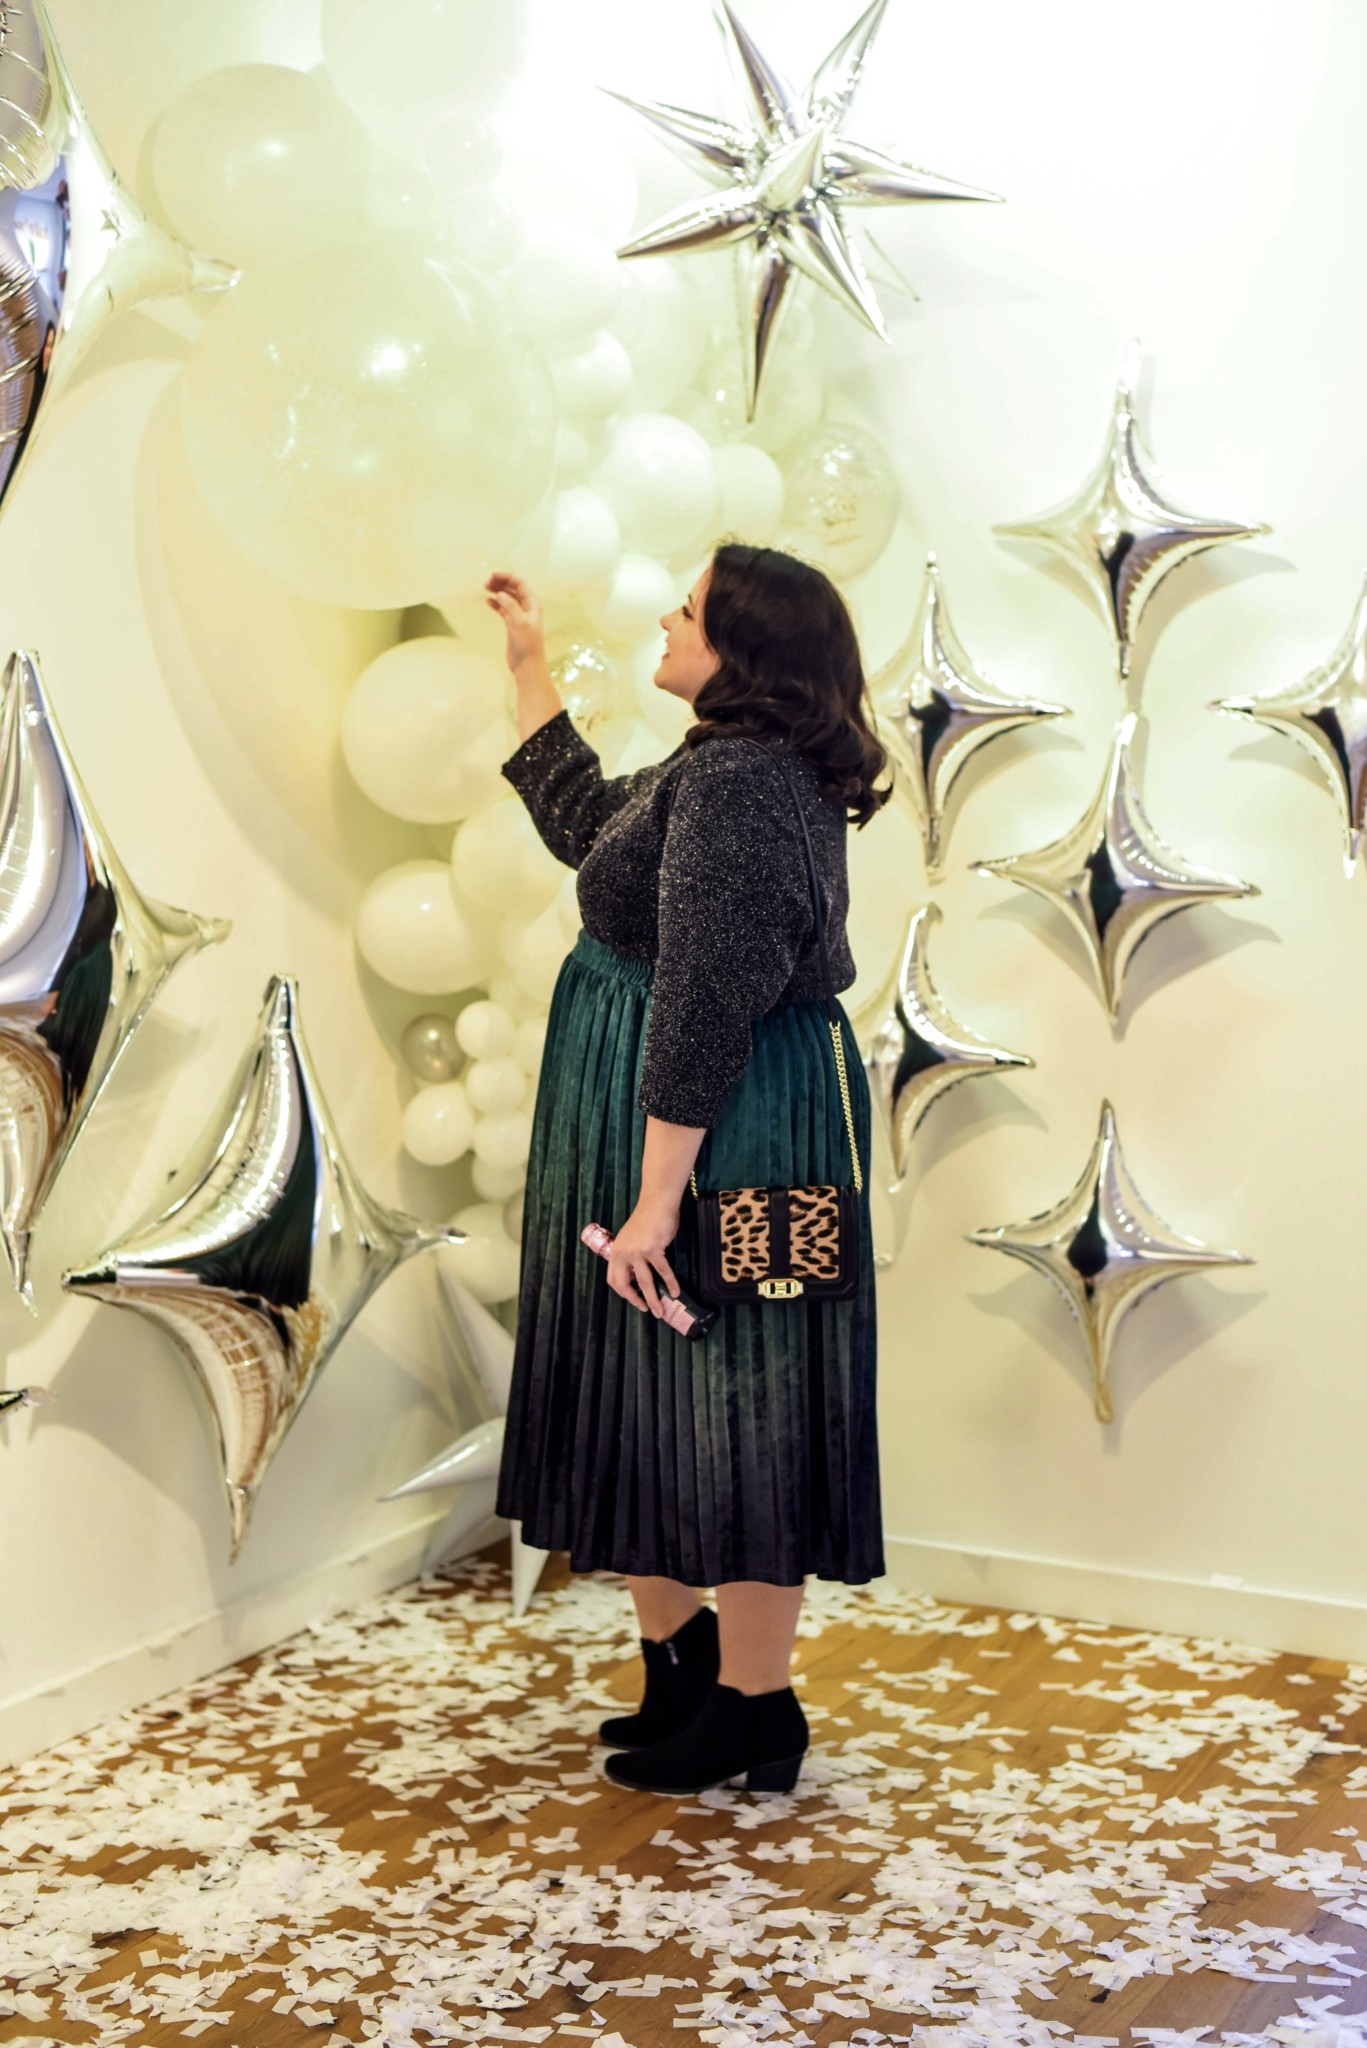 Celebrating New Year's Eve with lots of balloons, a comfortable and gorgeous outfit and a bit of champage